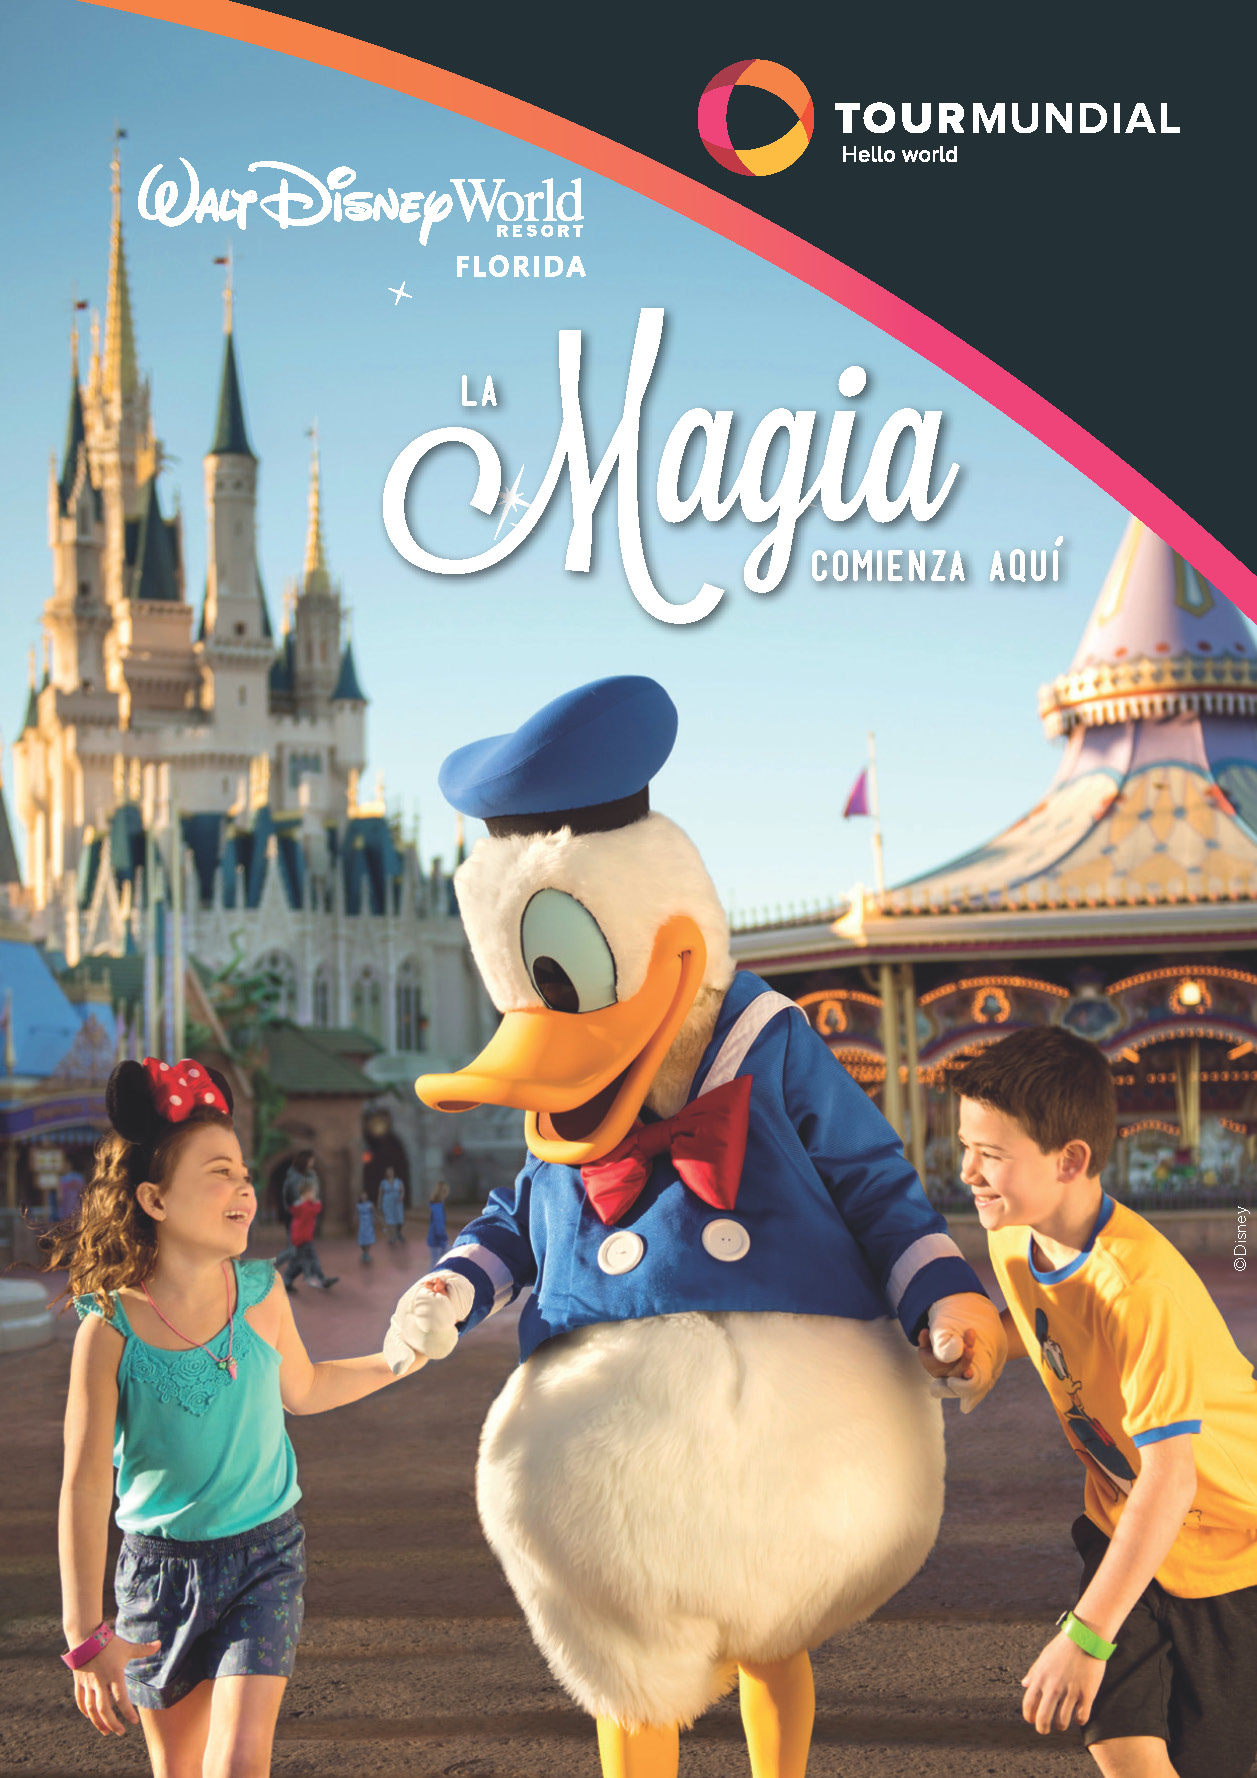 Catalogo Tourmundial Walt Disney World Resort Florida 2020